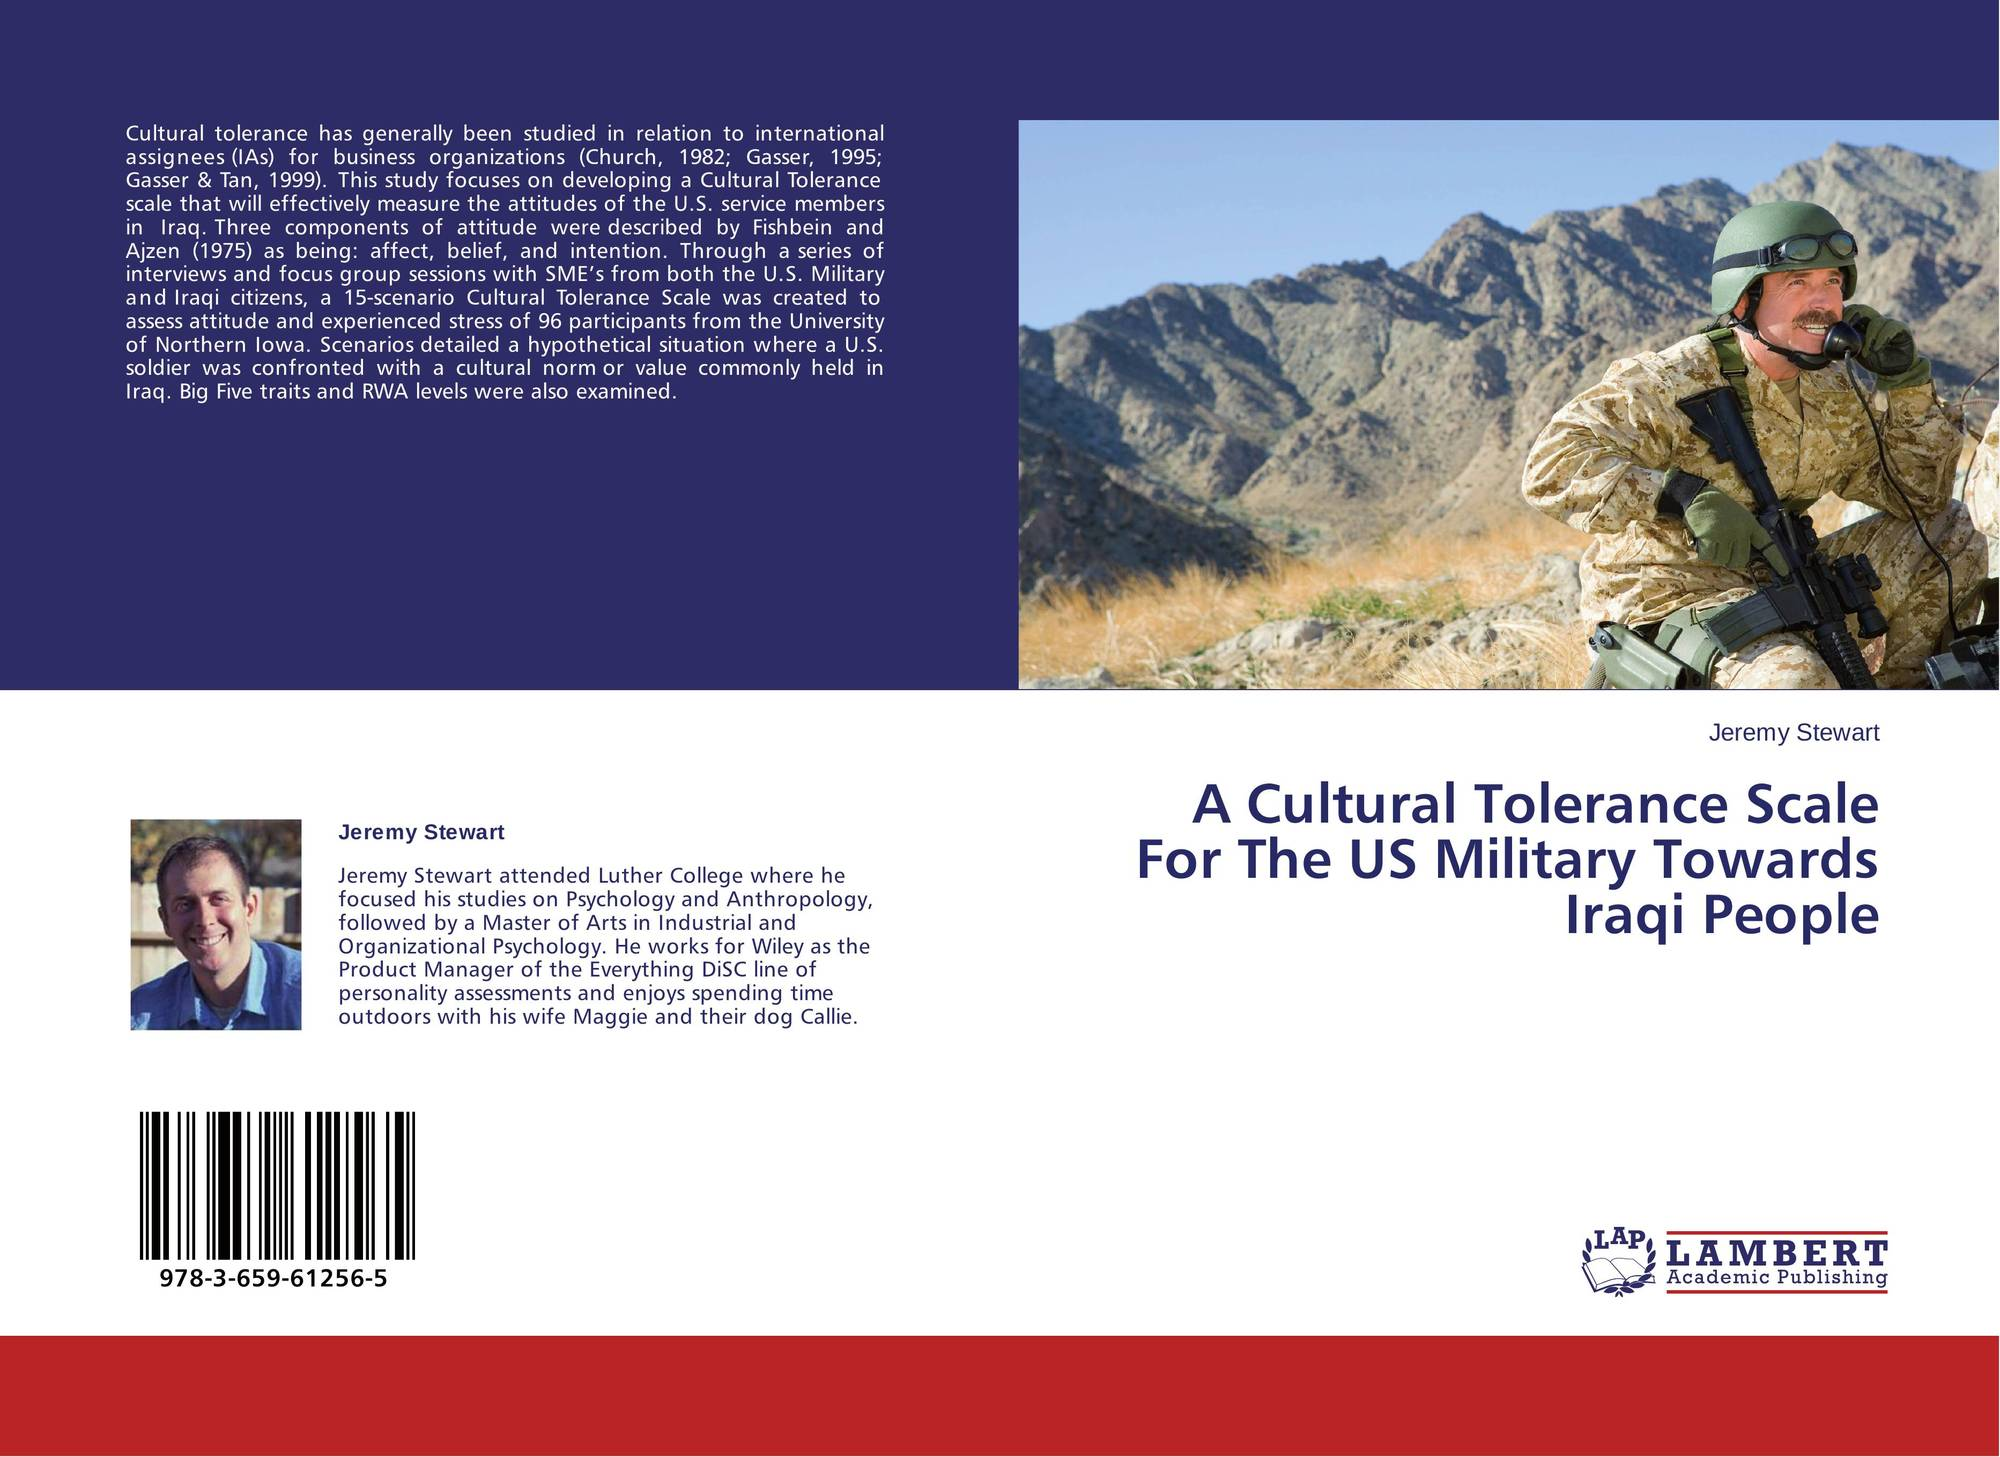 A Cultural Tolerance Scale For The US Military Towards Iraqi